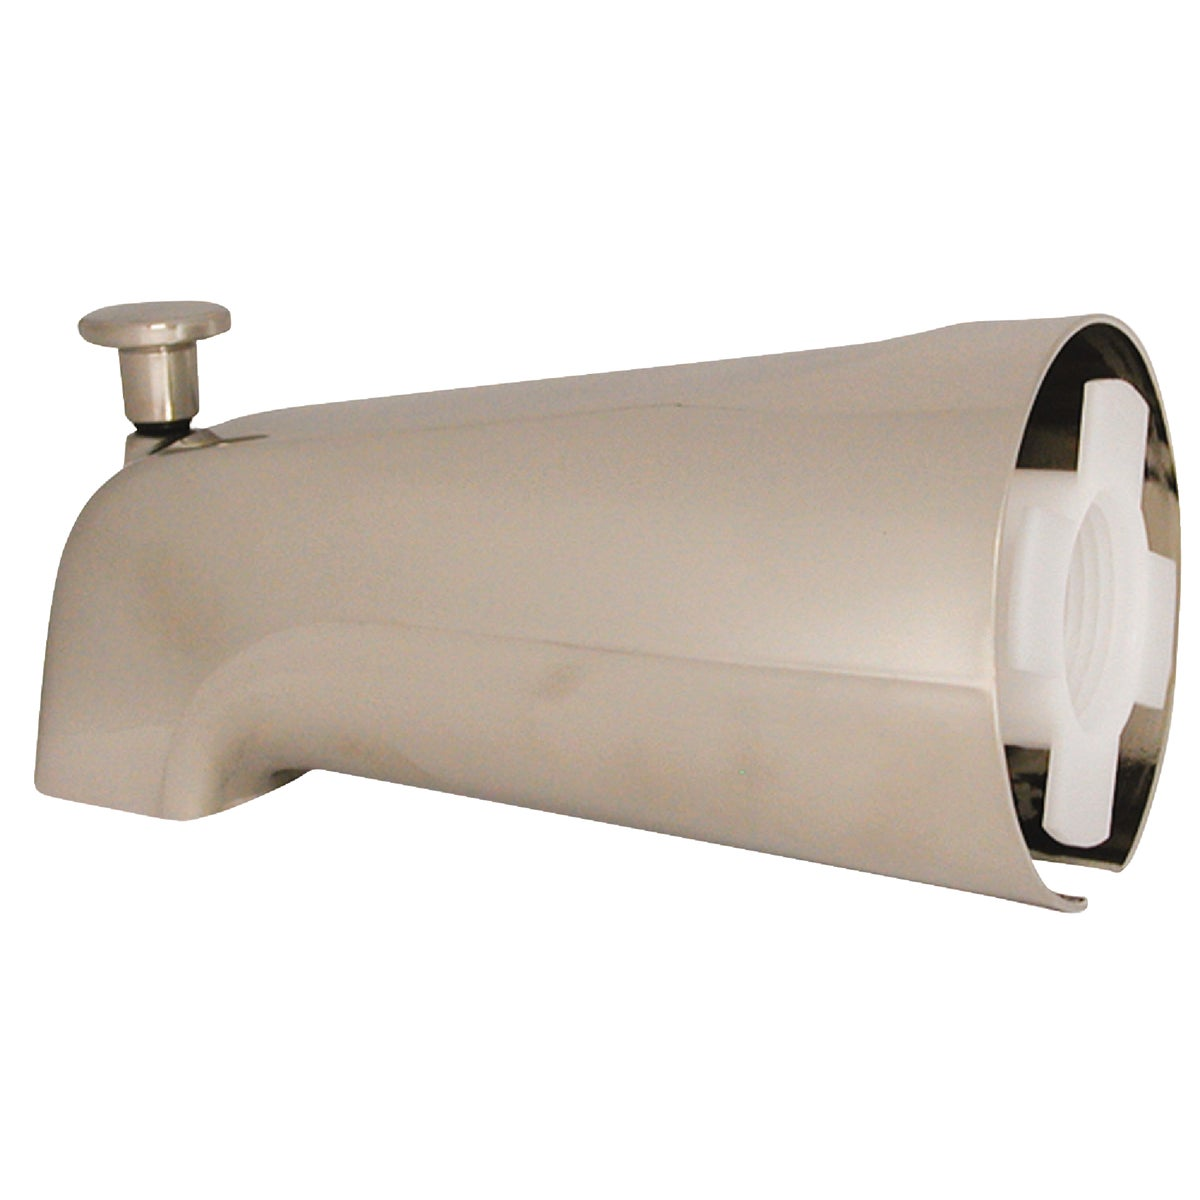 BN UNIV W/DIV TUB SPOUT - 89249 by Danco Perfect Match